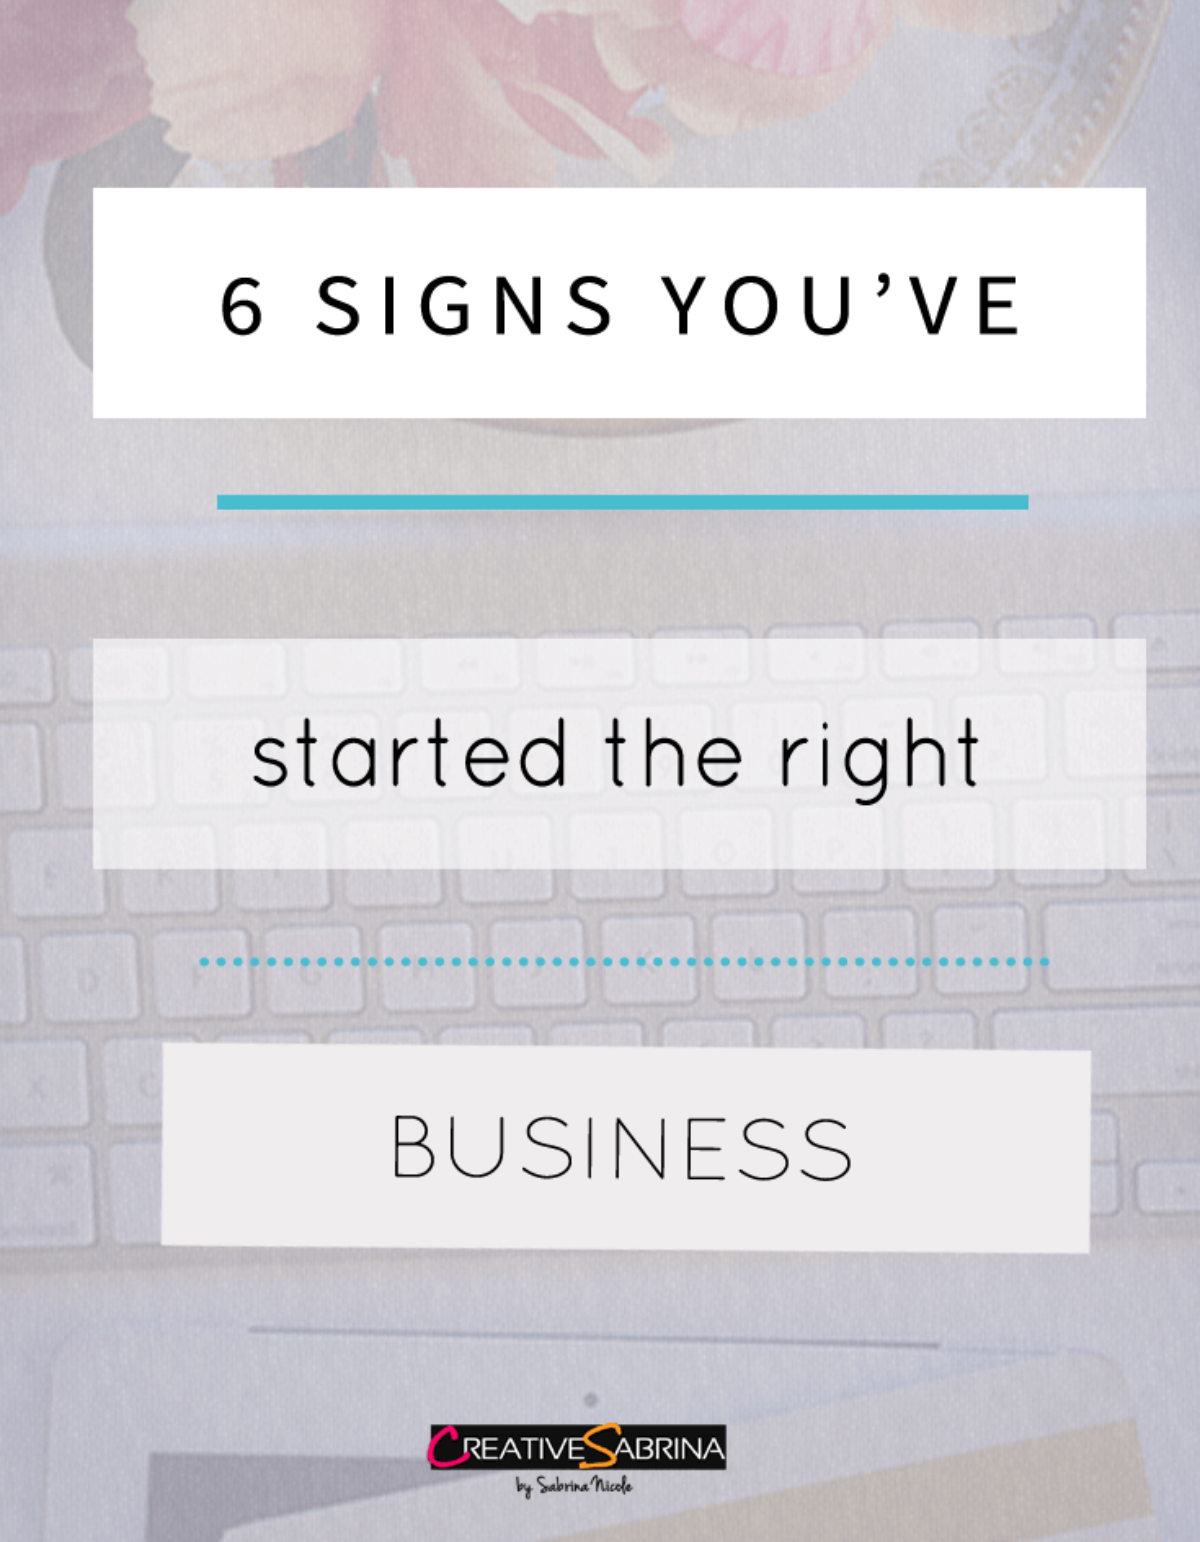 6 Signs You've Started The Right Business